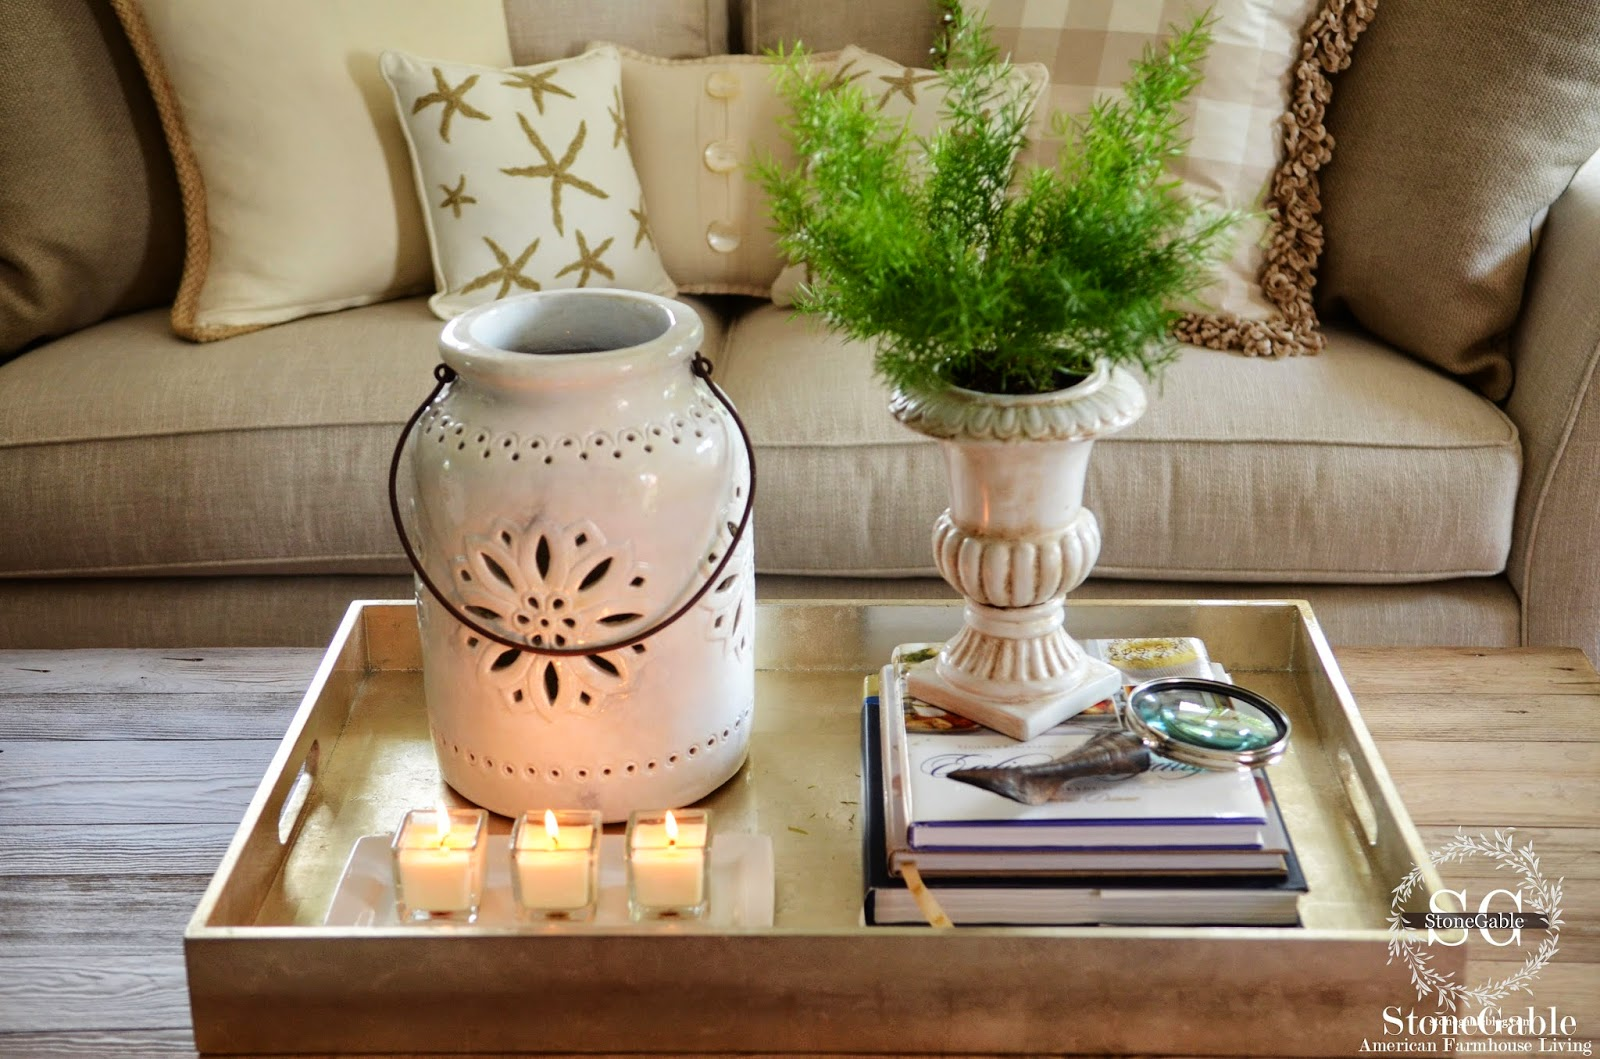 Decorative Plate For Coffee Table 5 Tips To Style A Coffee Table Like A Pro Stonegable & Decorative Plate For Coffee Table | Wall Plate Design Ideas